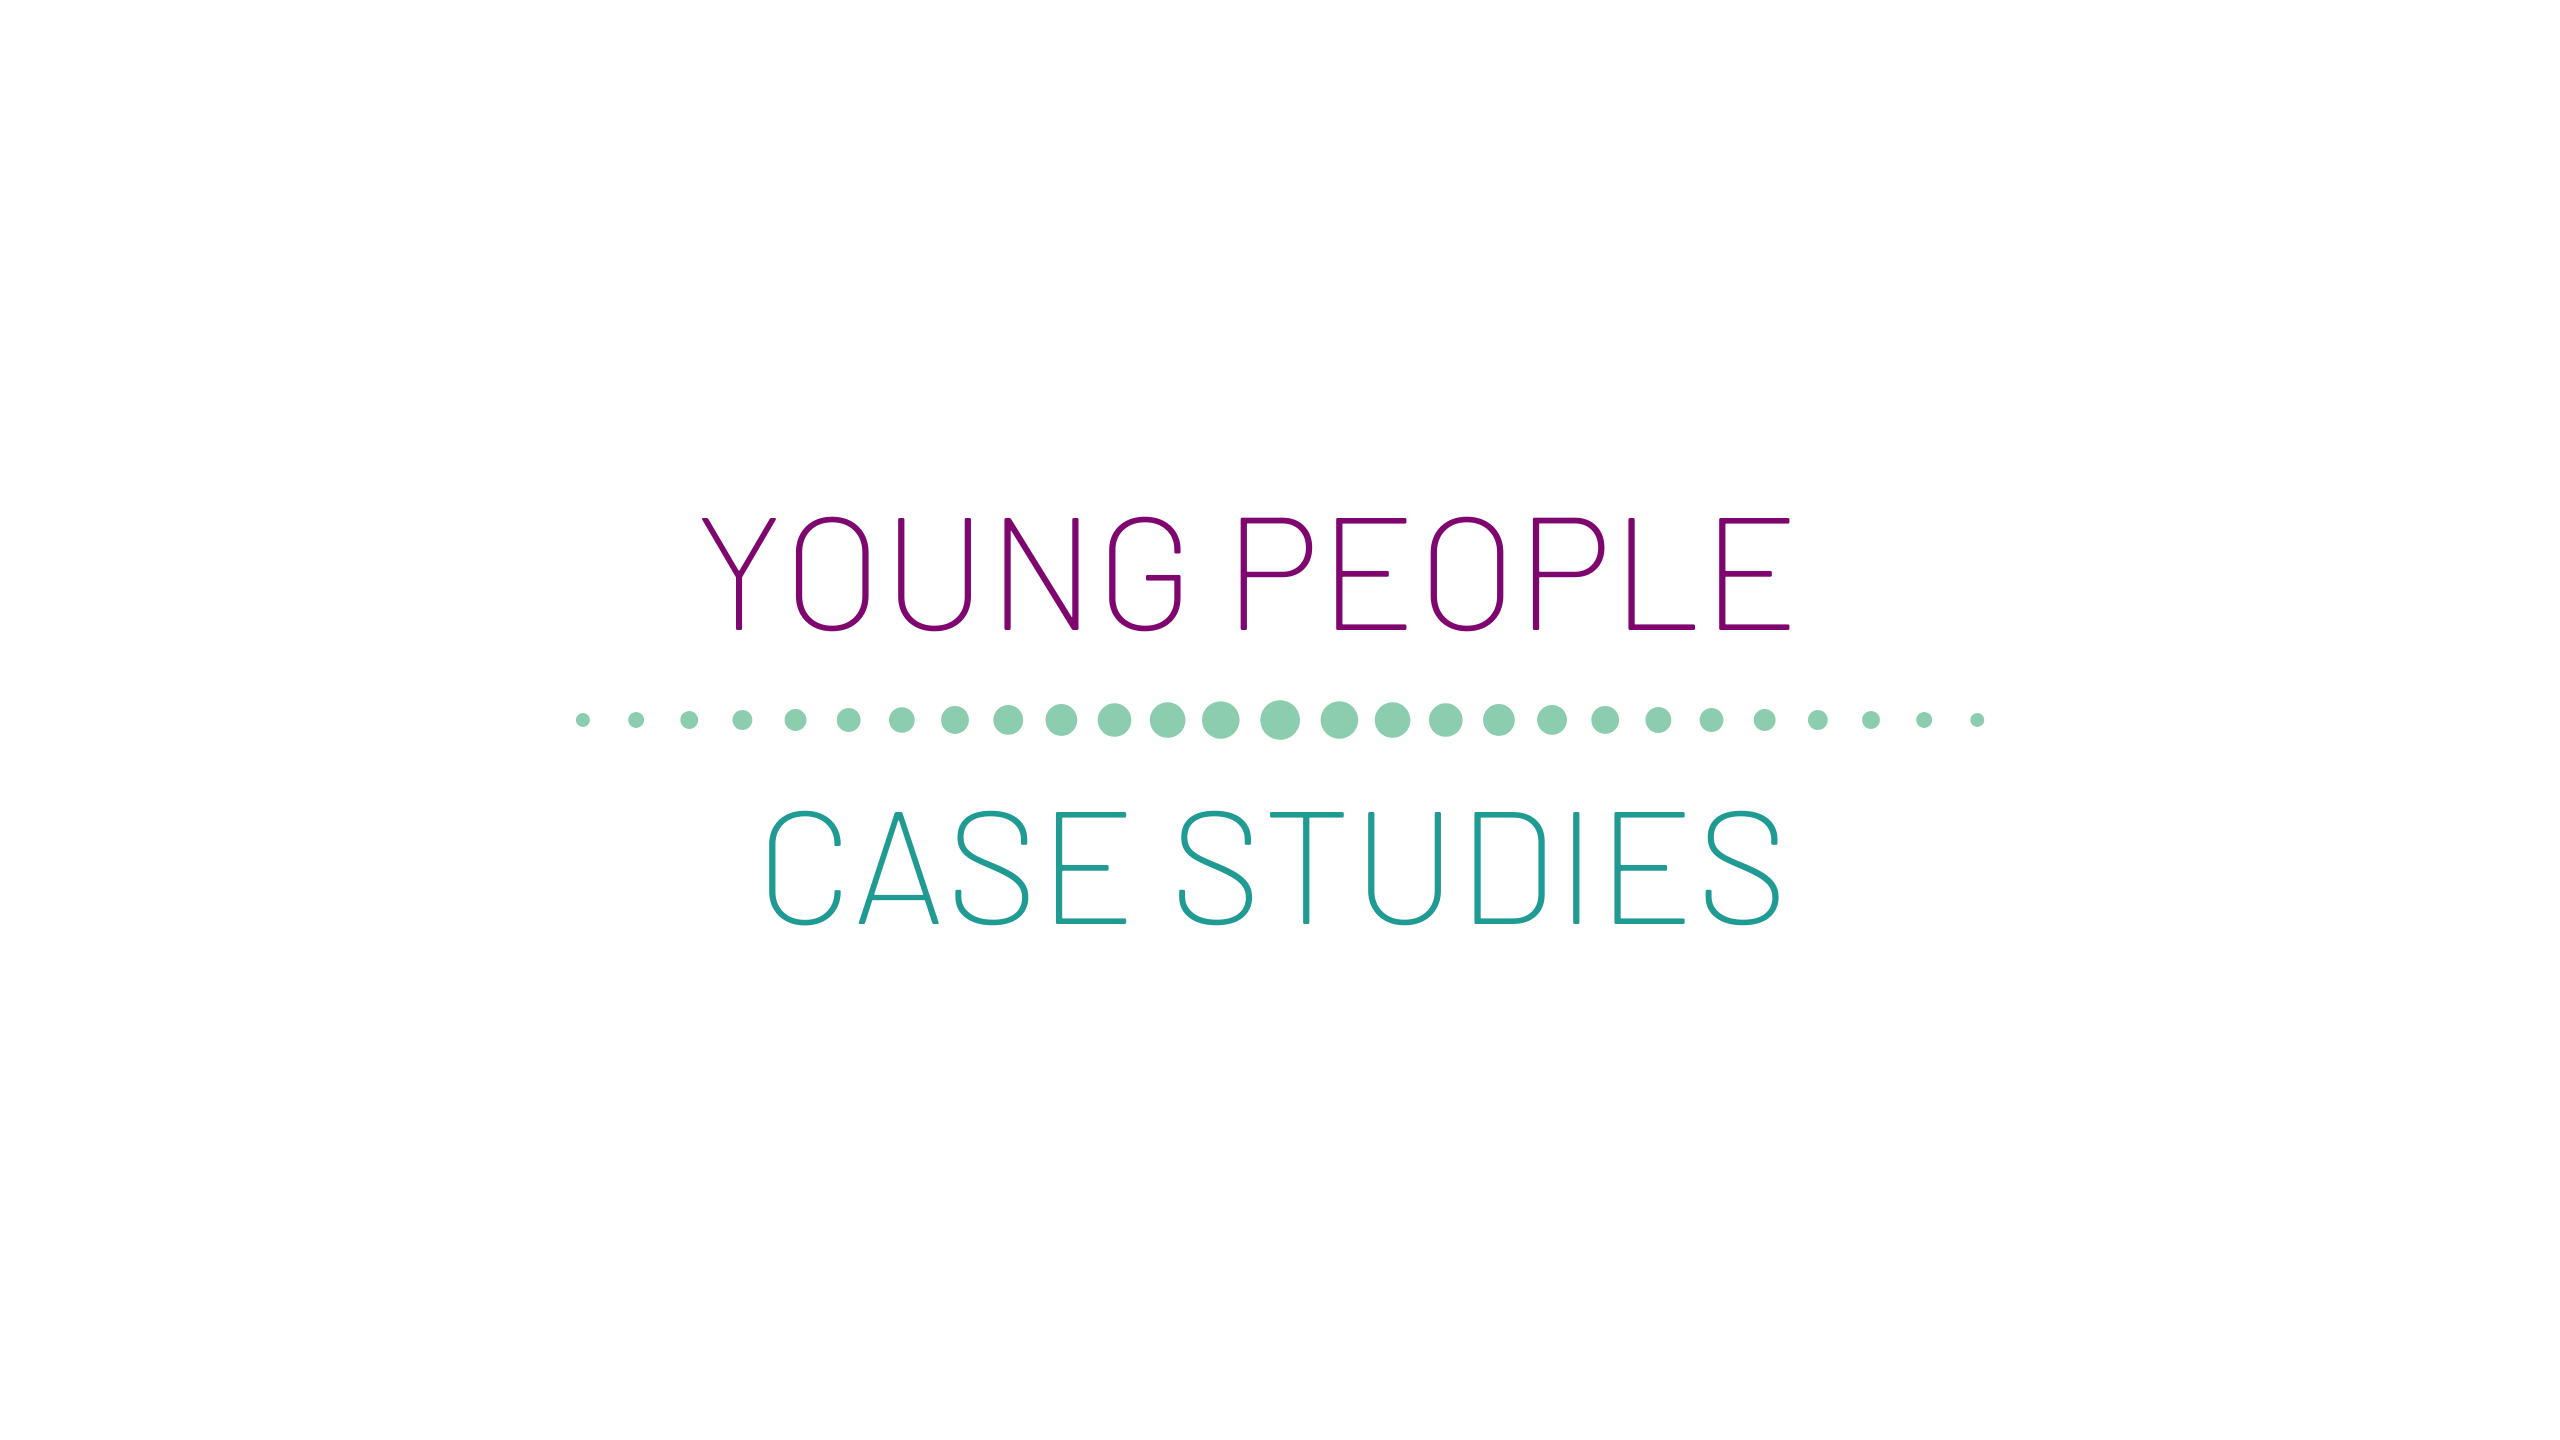 Young people case studies